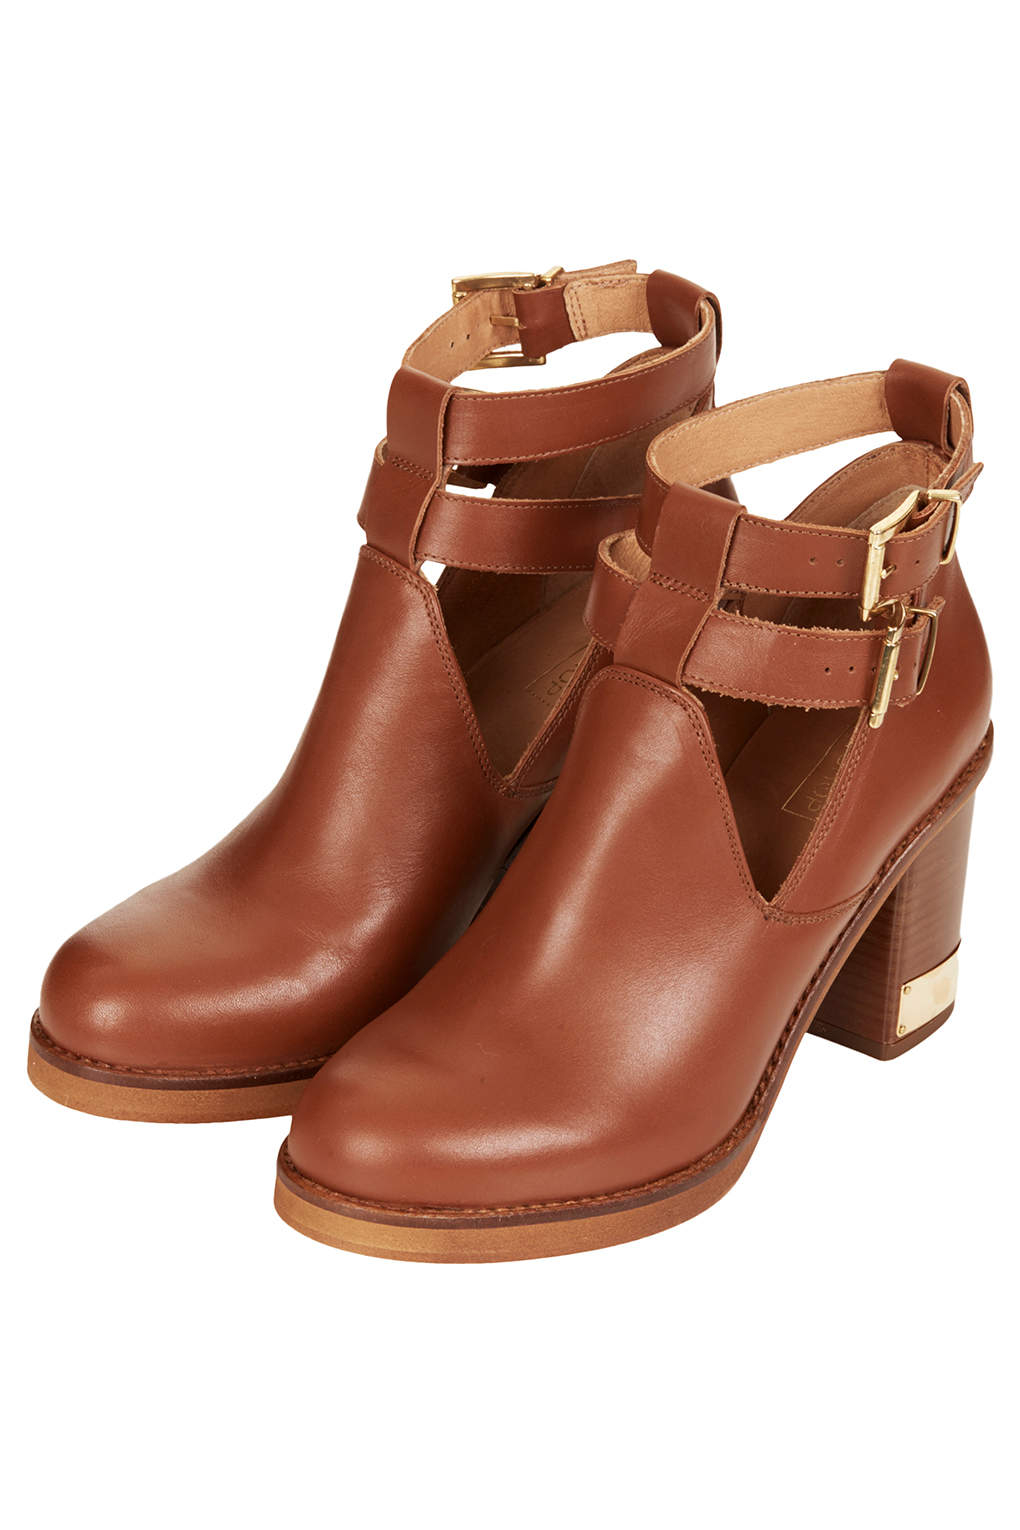 brown ankle boots gallery olxplbh